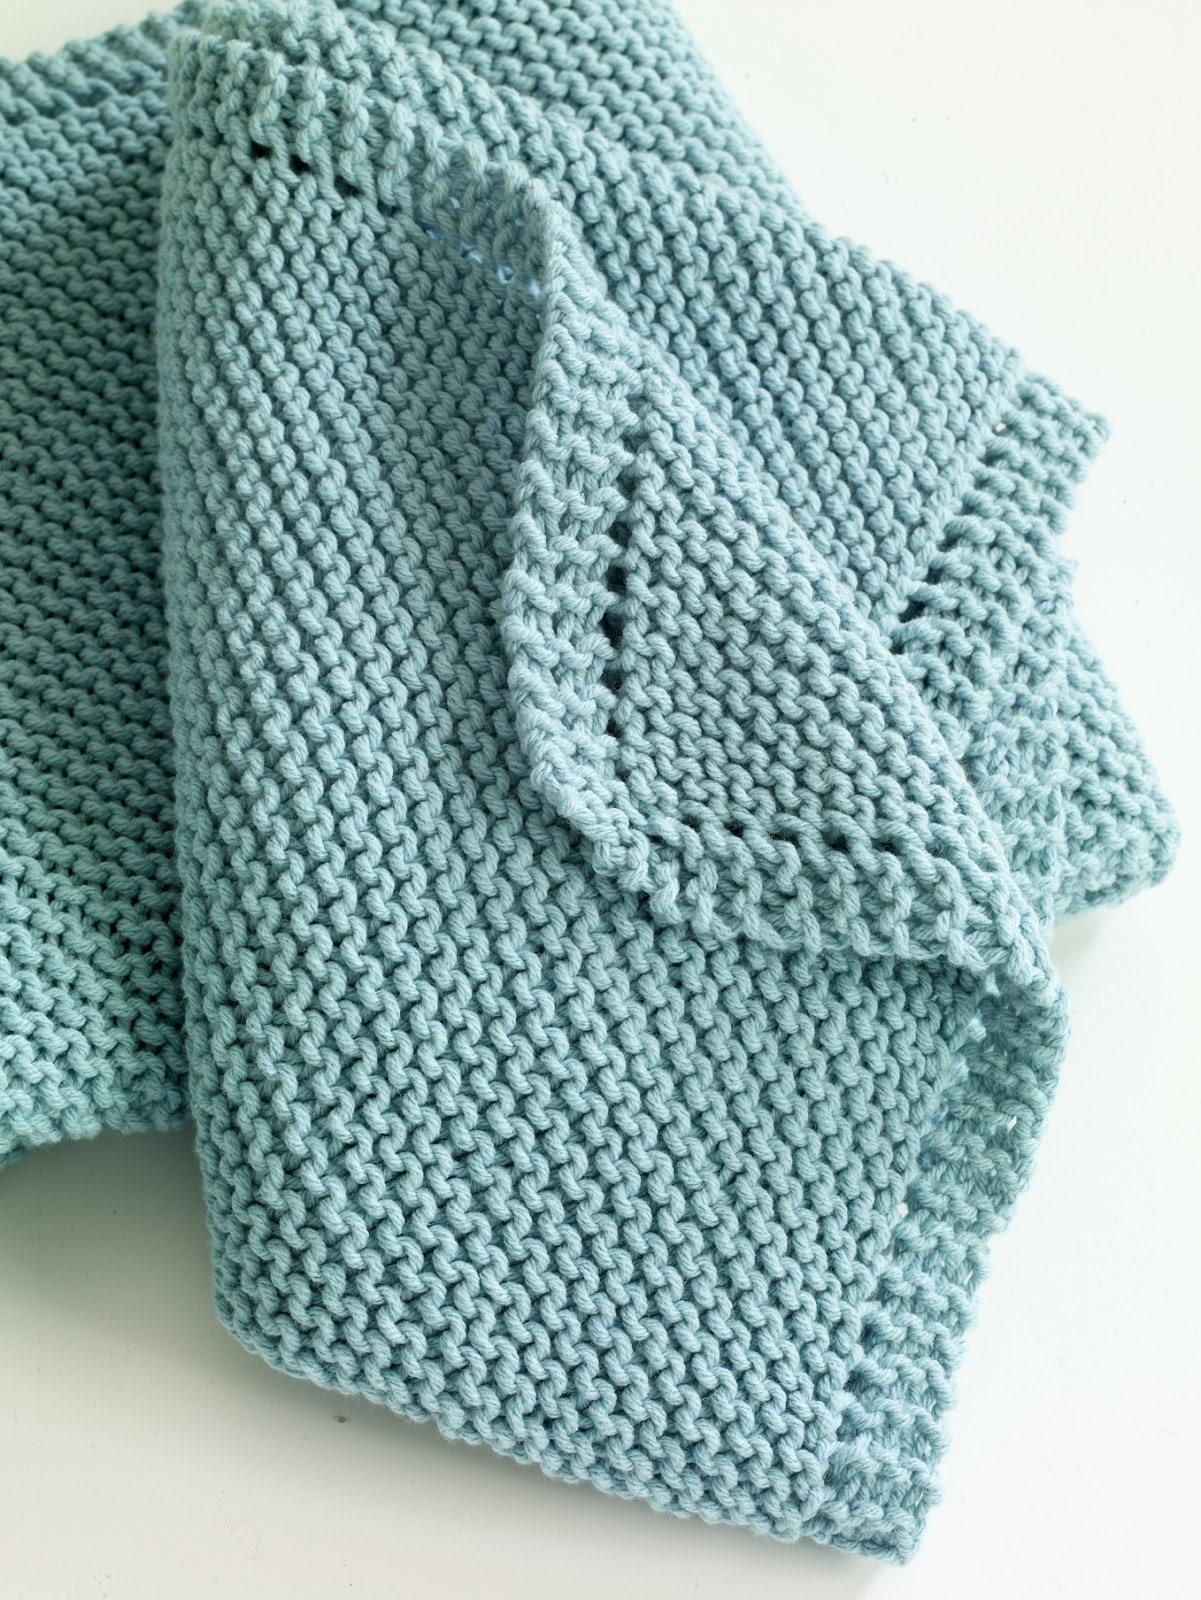 Free Knitting Pattern For Leaf Baby Blanket : Serenity Knits: December 2012